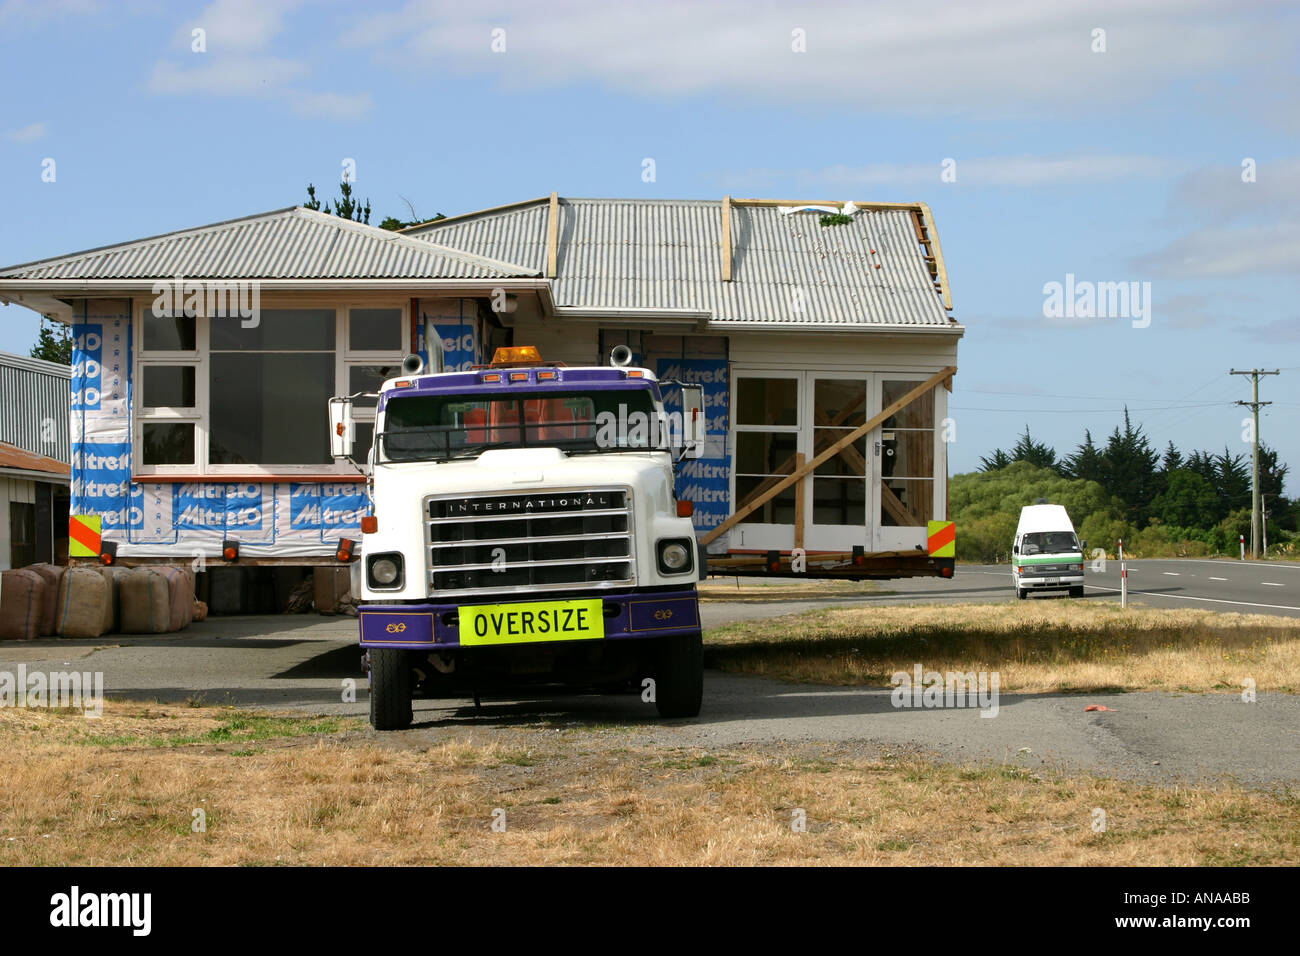 Moving oversize house on truck in New Zealand campervan in background Stock Photo